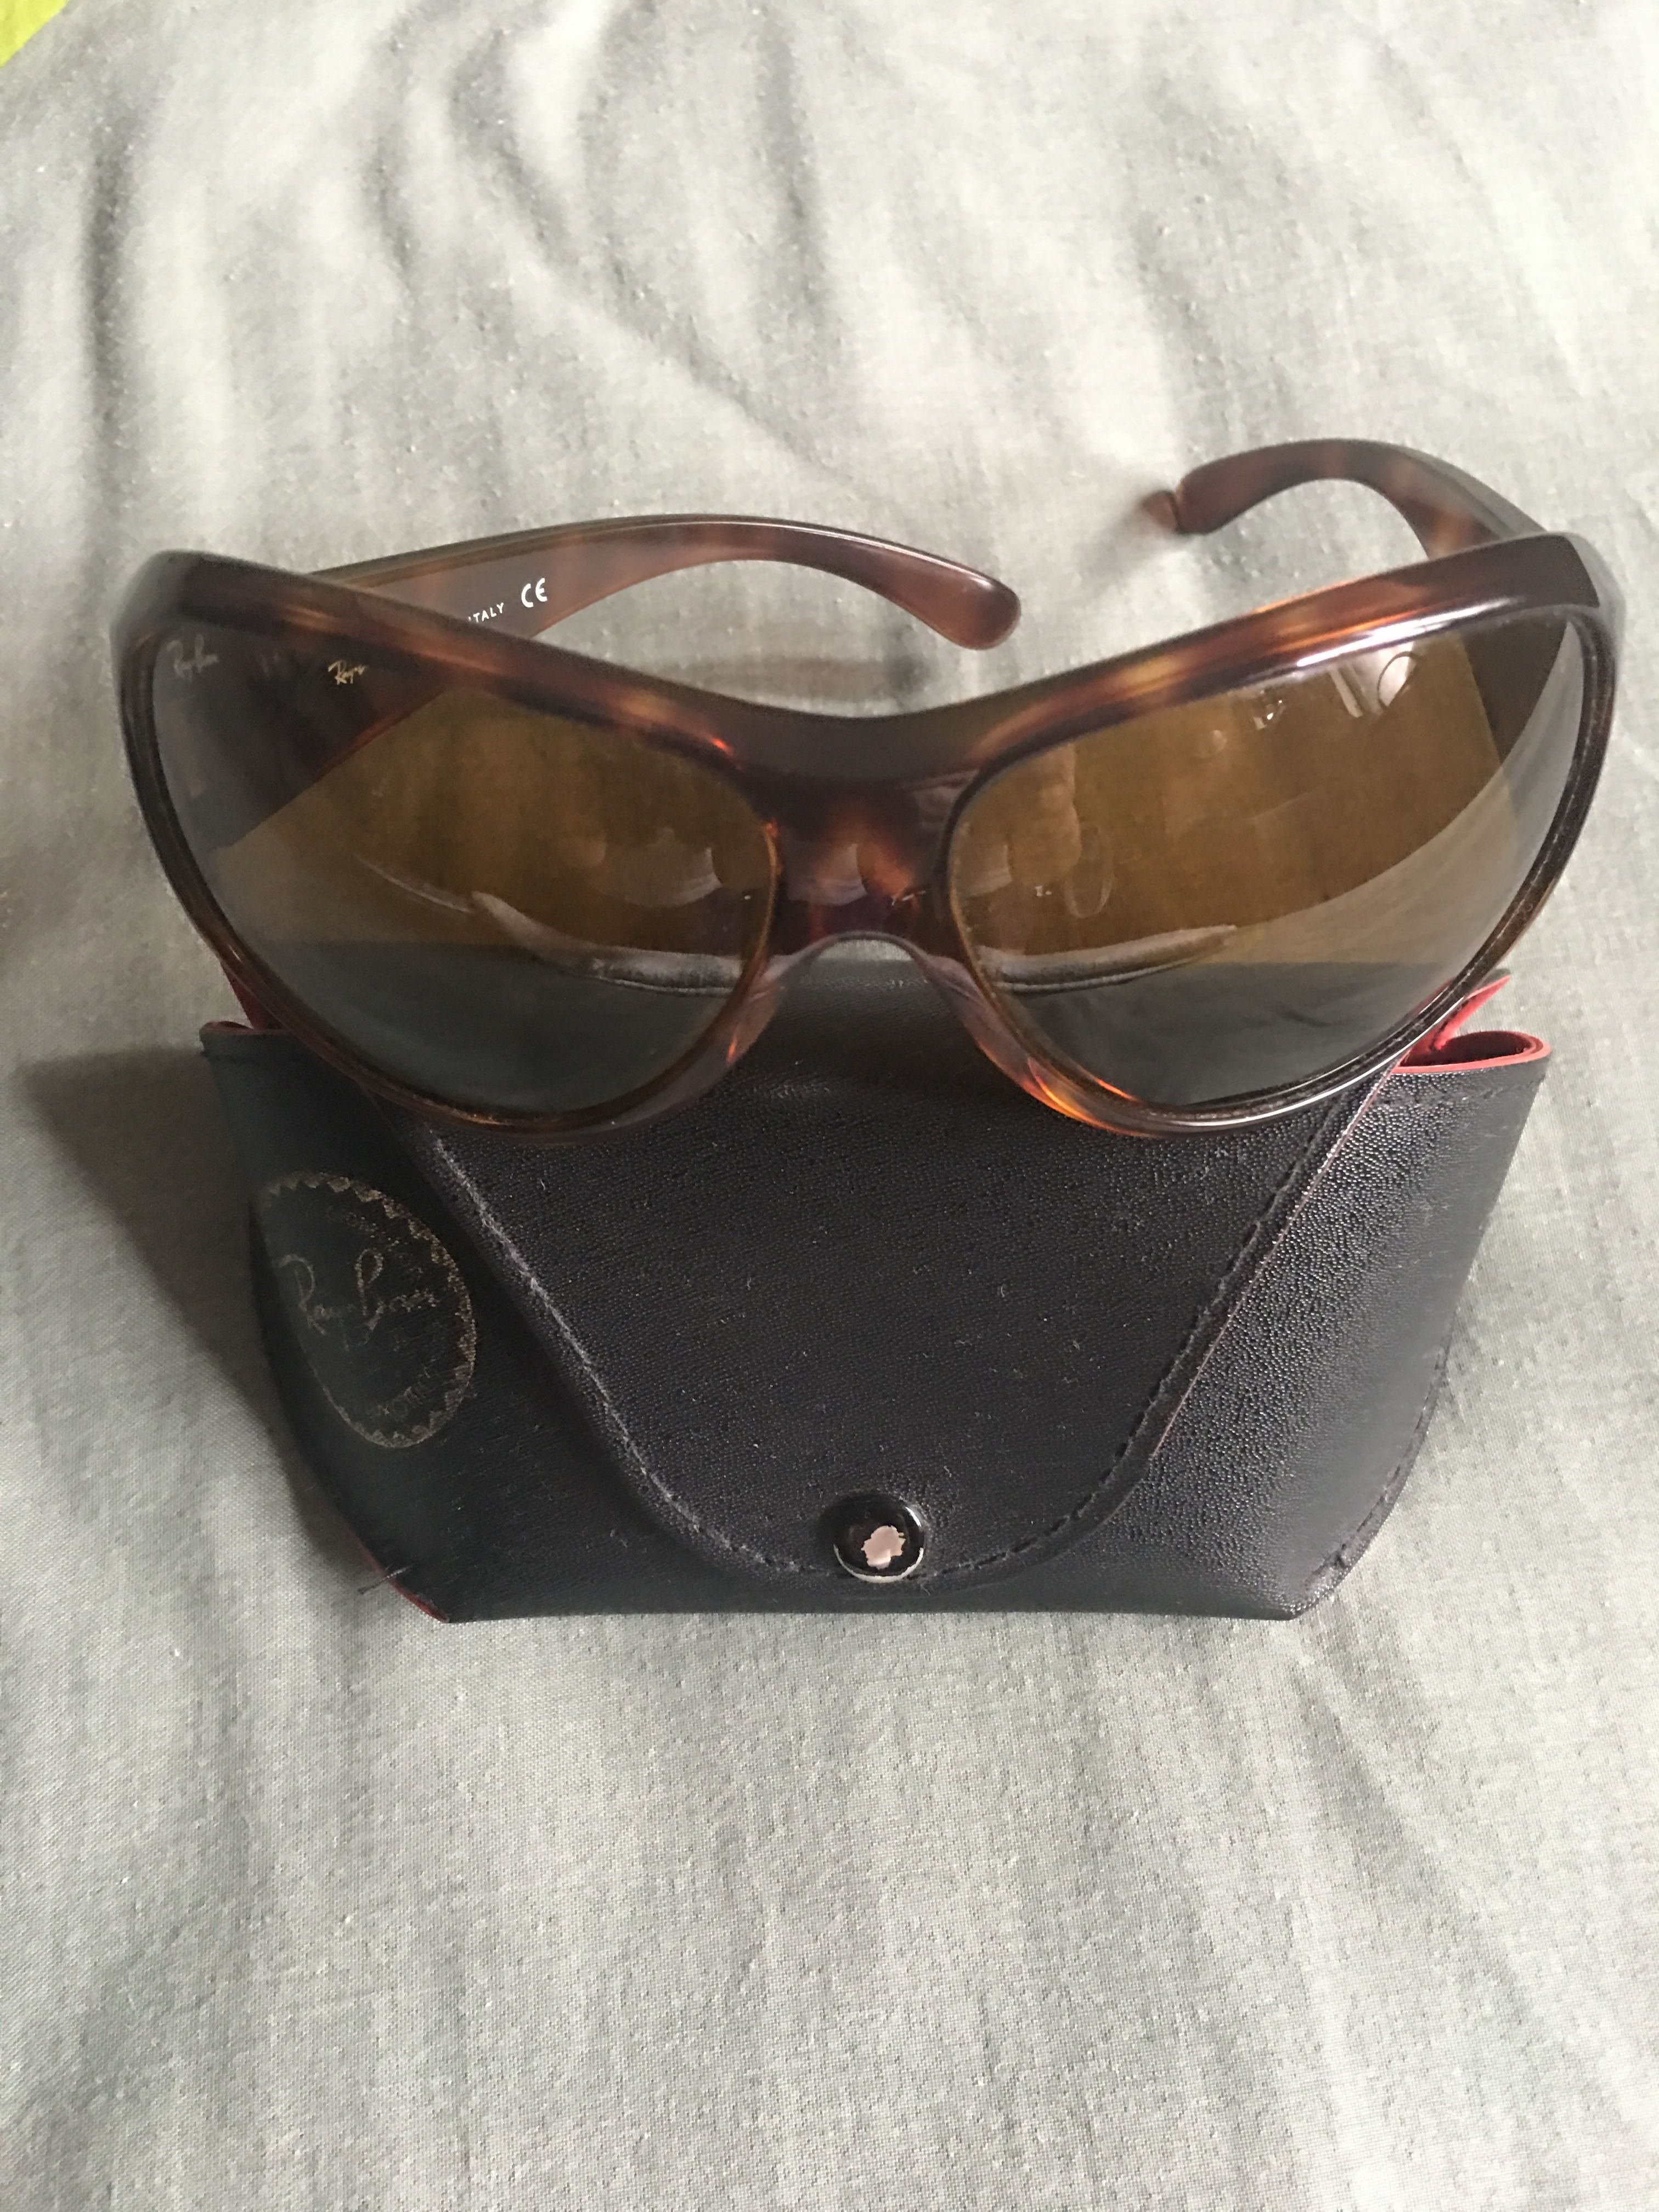 Ray-Ban Woman's Sunglasses